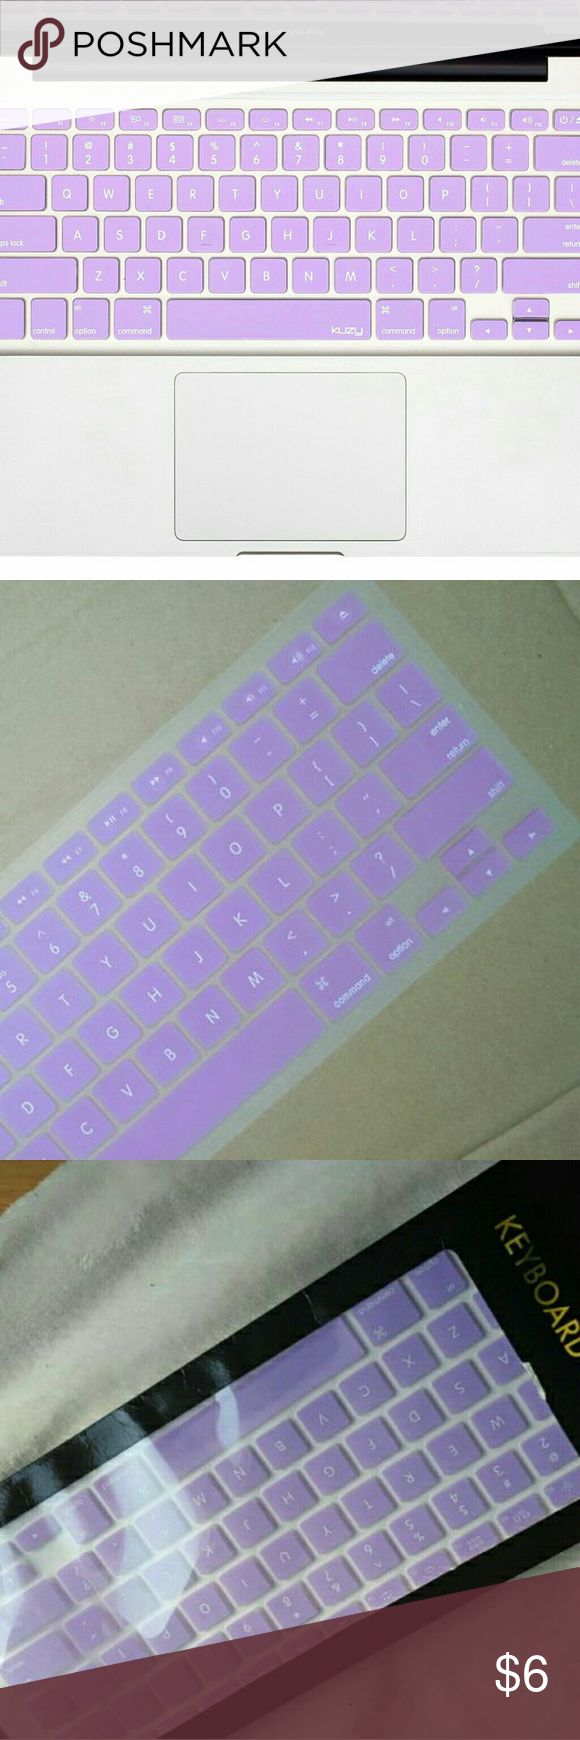 "MacBook keyboard cover BRAND NEW!!!Macbook Pro Keyboard Cover Color: Purple (lilac) Compatible with: MacBook Pro(13""/15""/17"") White MacBook(13"") MacBook with Retina(13""/15"") MacBook Air(13"")                         [PRICE IS FIRM]                   (Yes I can create bundles) Michael Kors Accessories Laptop Cases"